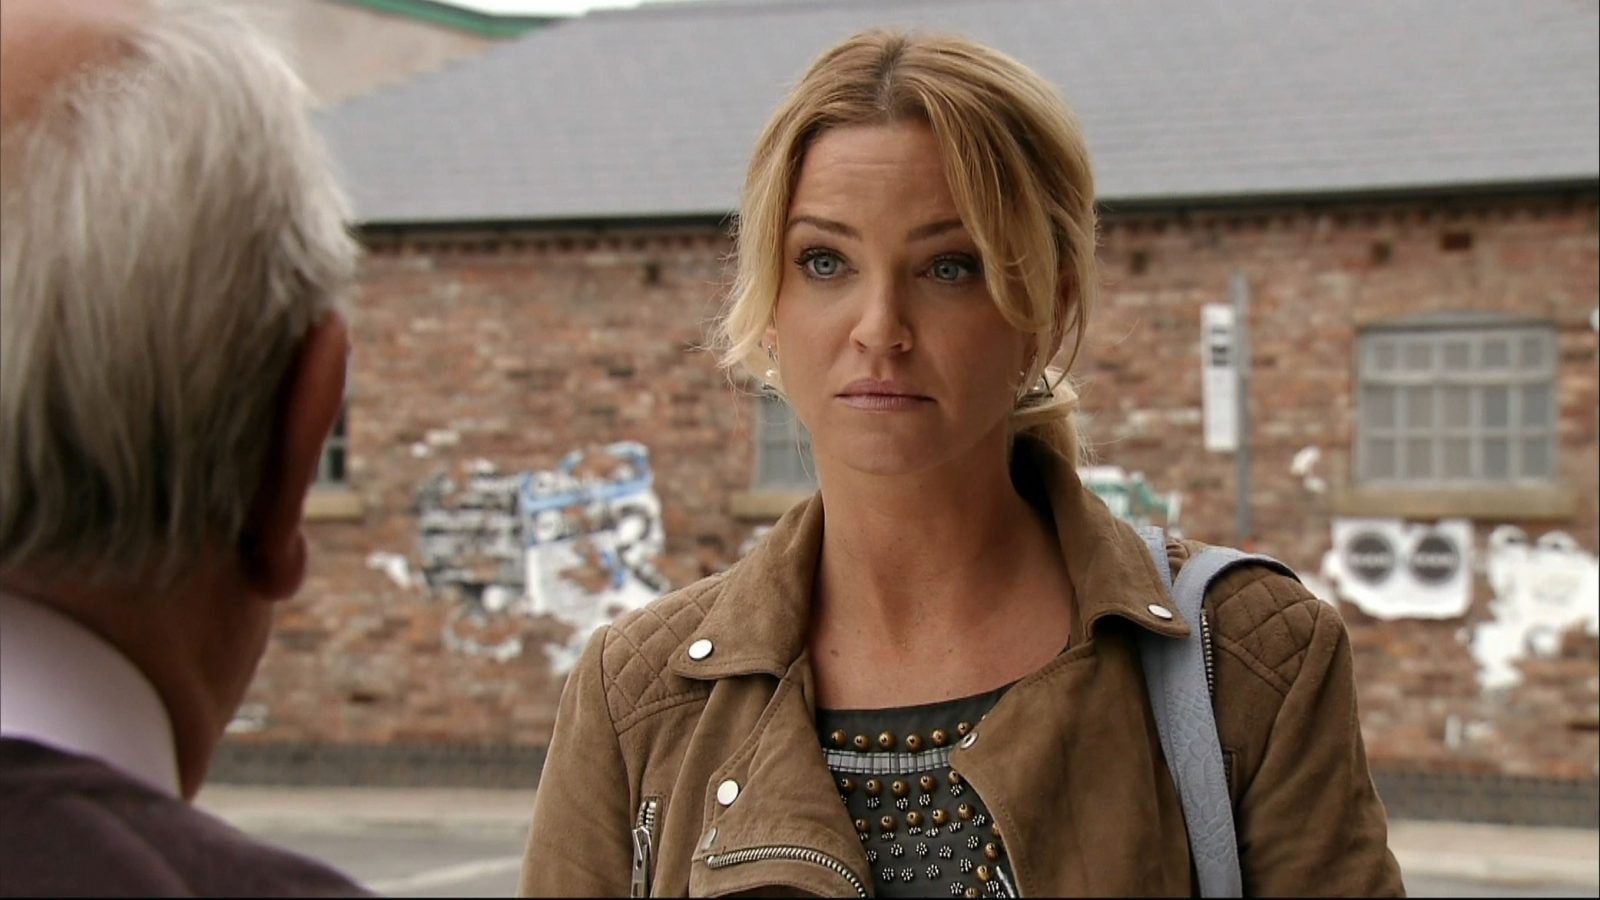 Sarah Harding had a special relationship with Greater Manchester, The Manc